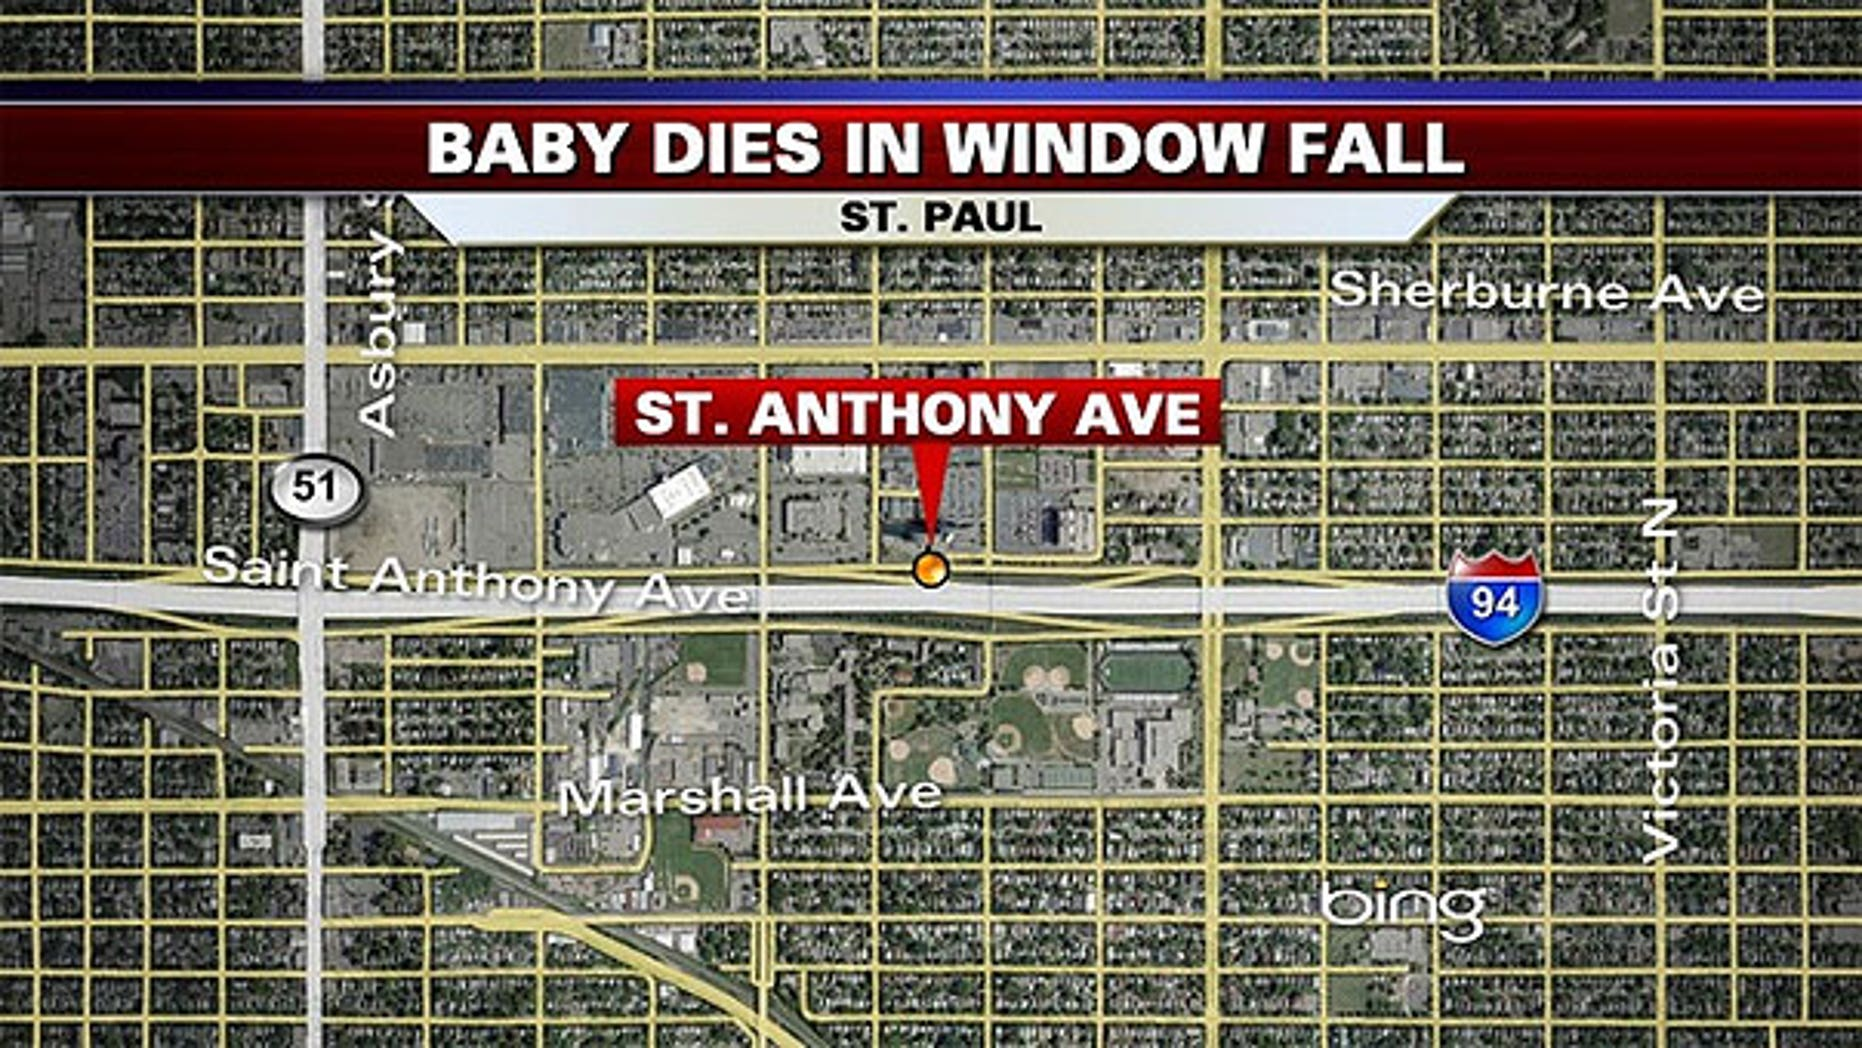 This image shows the 1200 block of St. Anthony Avenue where the accident occured.